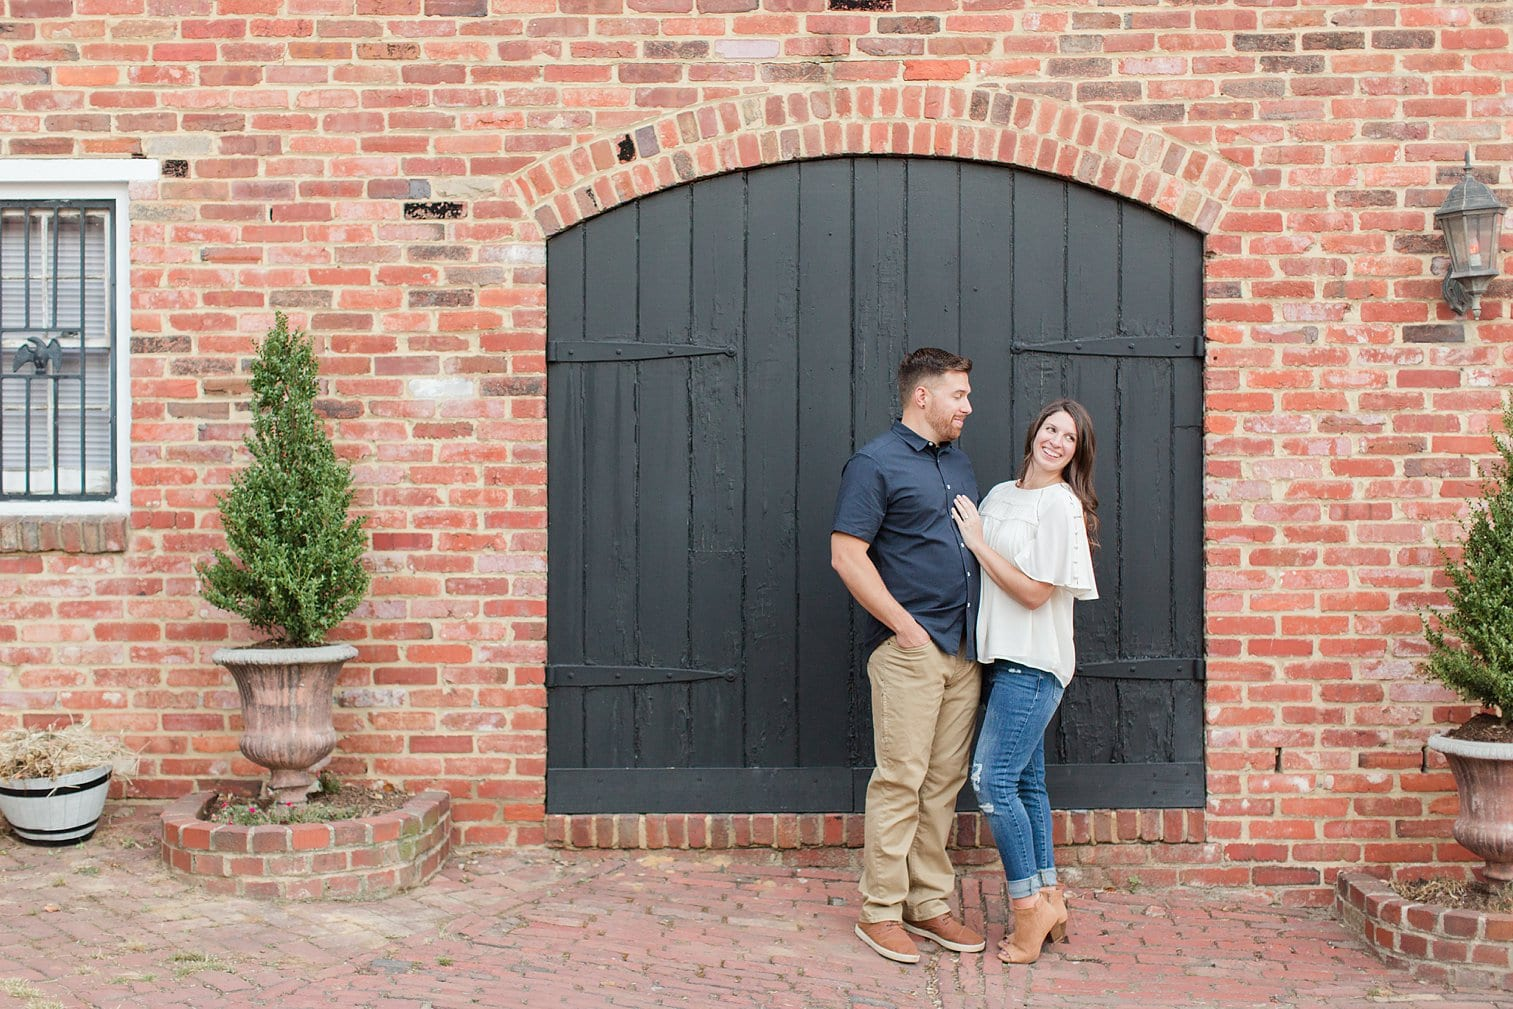 Fall Old Town Alexandria Engagement Photos Megan Kelsey Photography Virginia Wed-0050.jpg